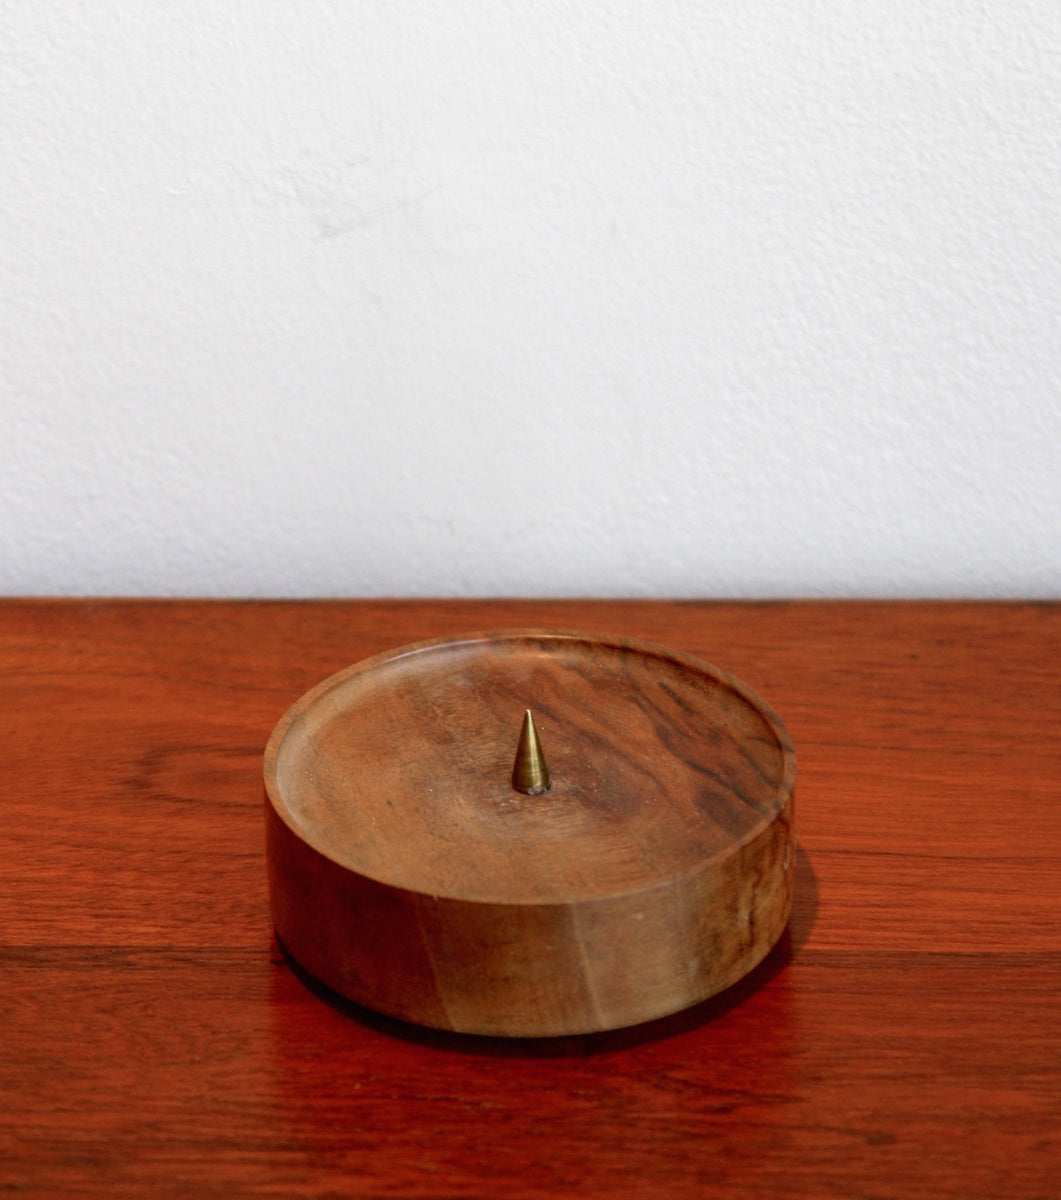 Simple Candlestick  Carl Auböck - Image 1